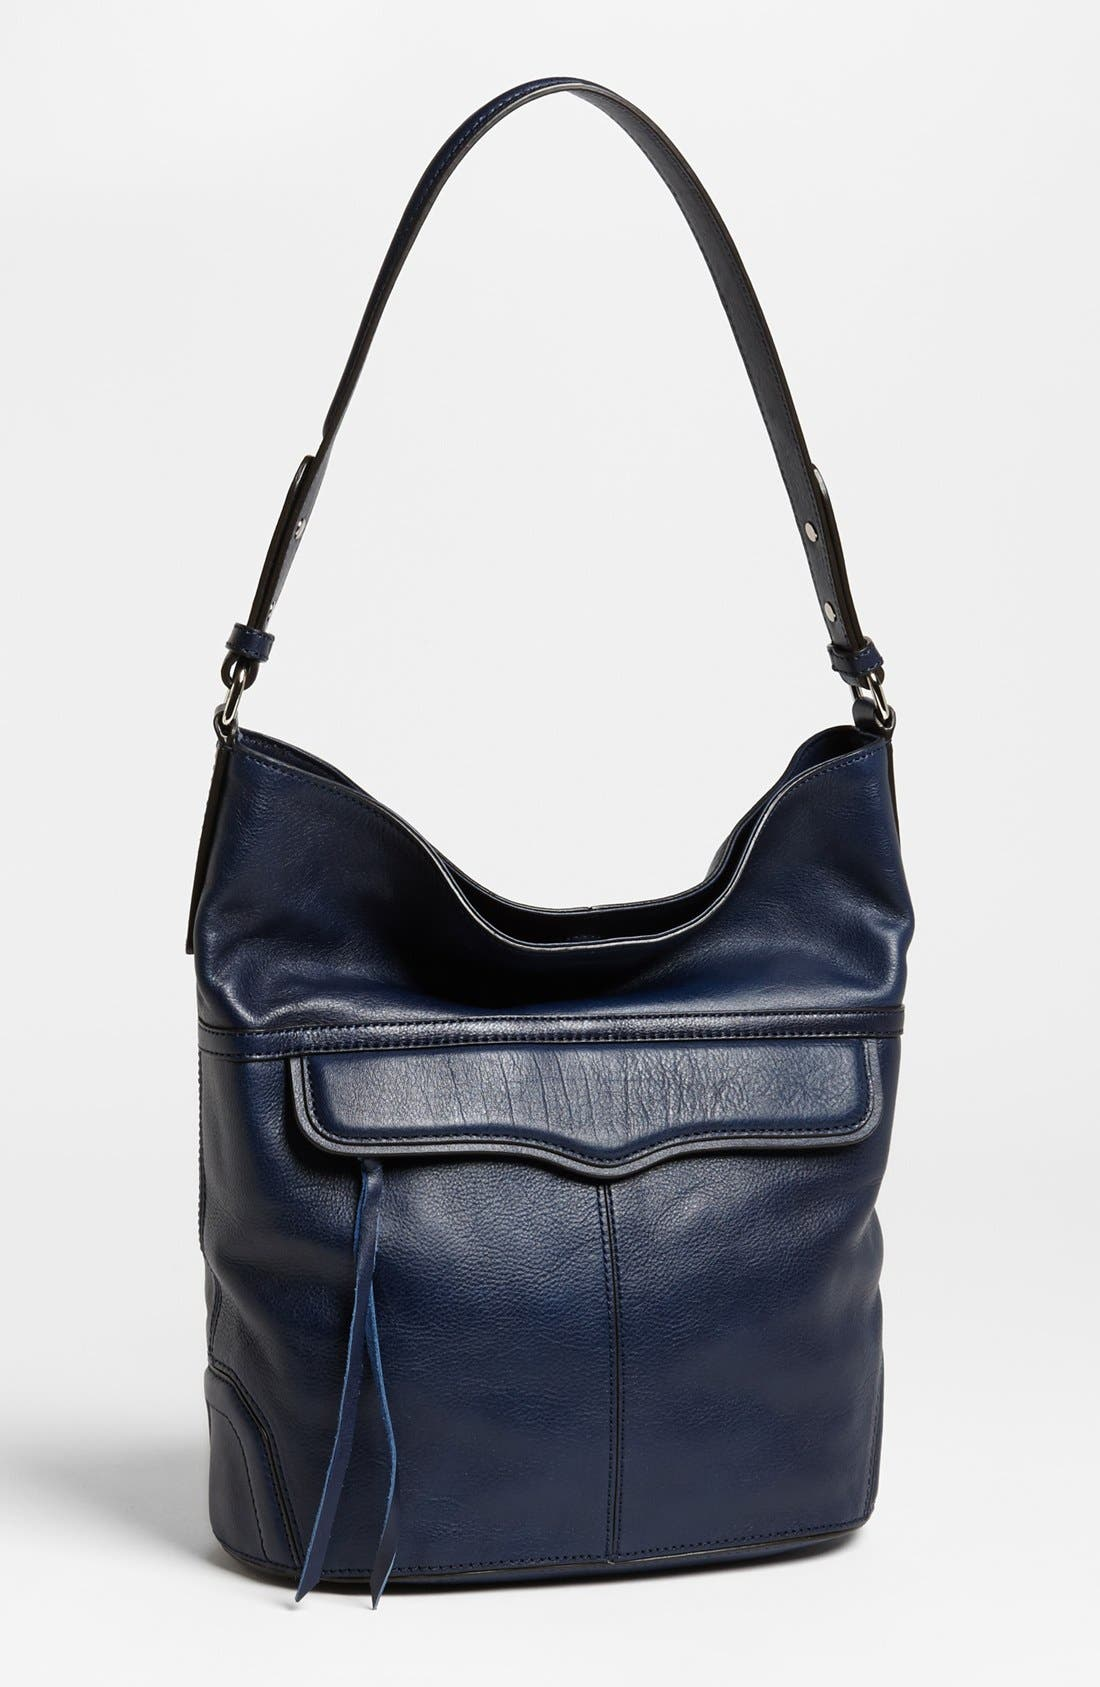 Alternate Image 1 Selected - Rebecca Minkoff 'Jasper' Hobo